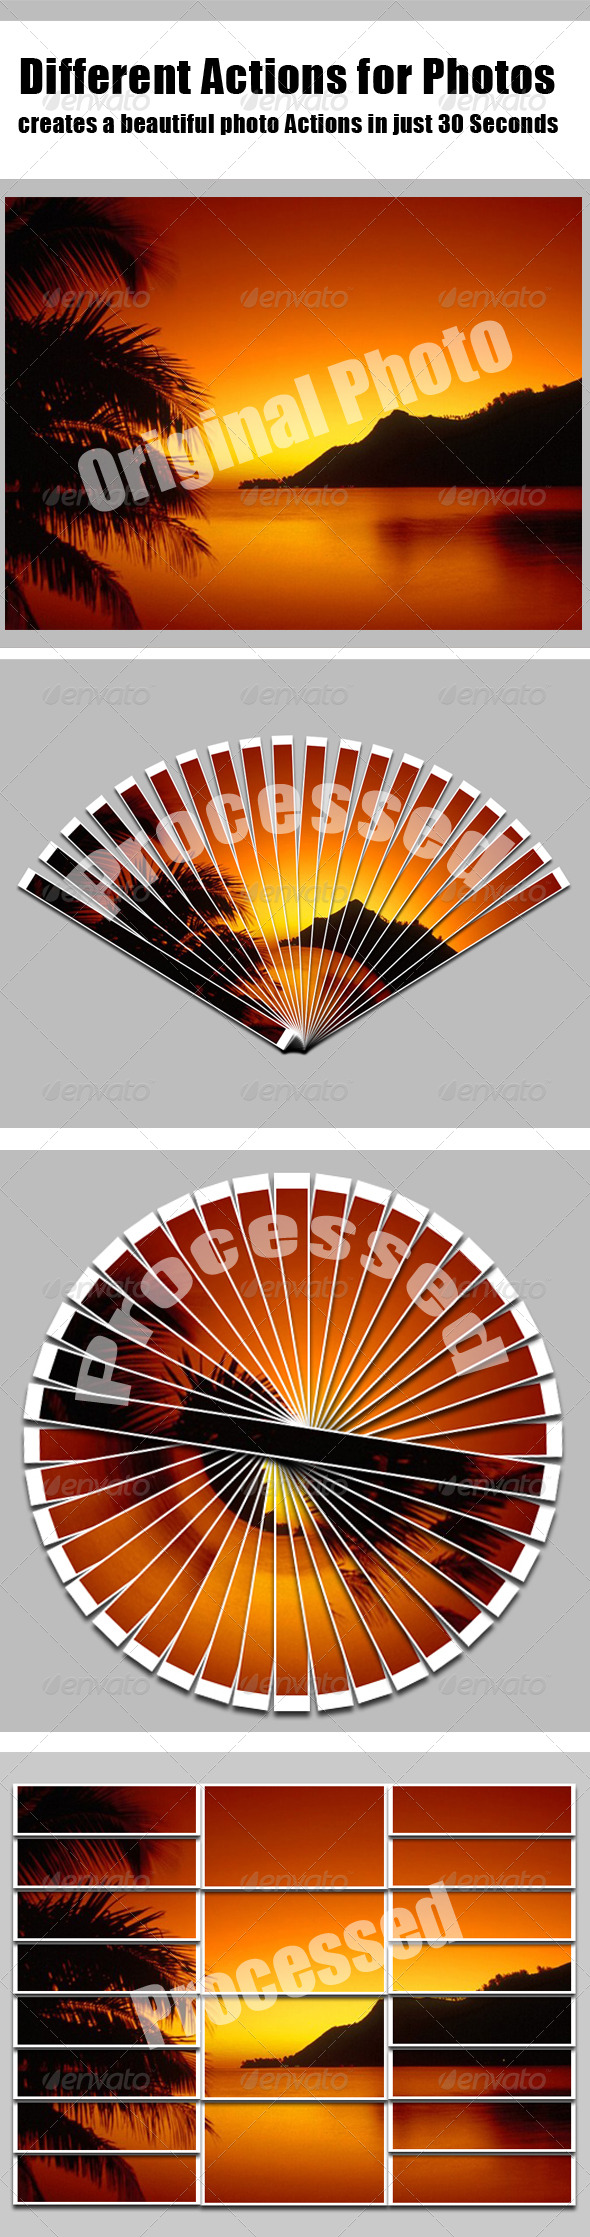 Add-ons : Different Actions for Photos GraphicRiver 216647 - Photoshop Actions Photo Effects